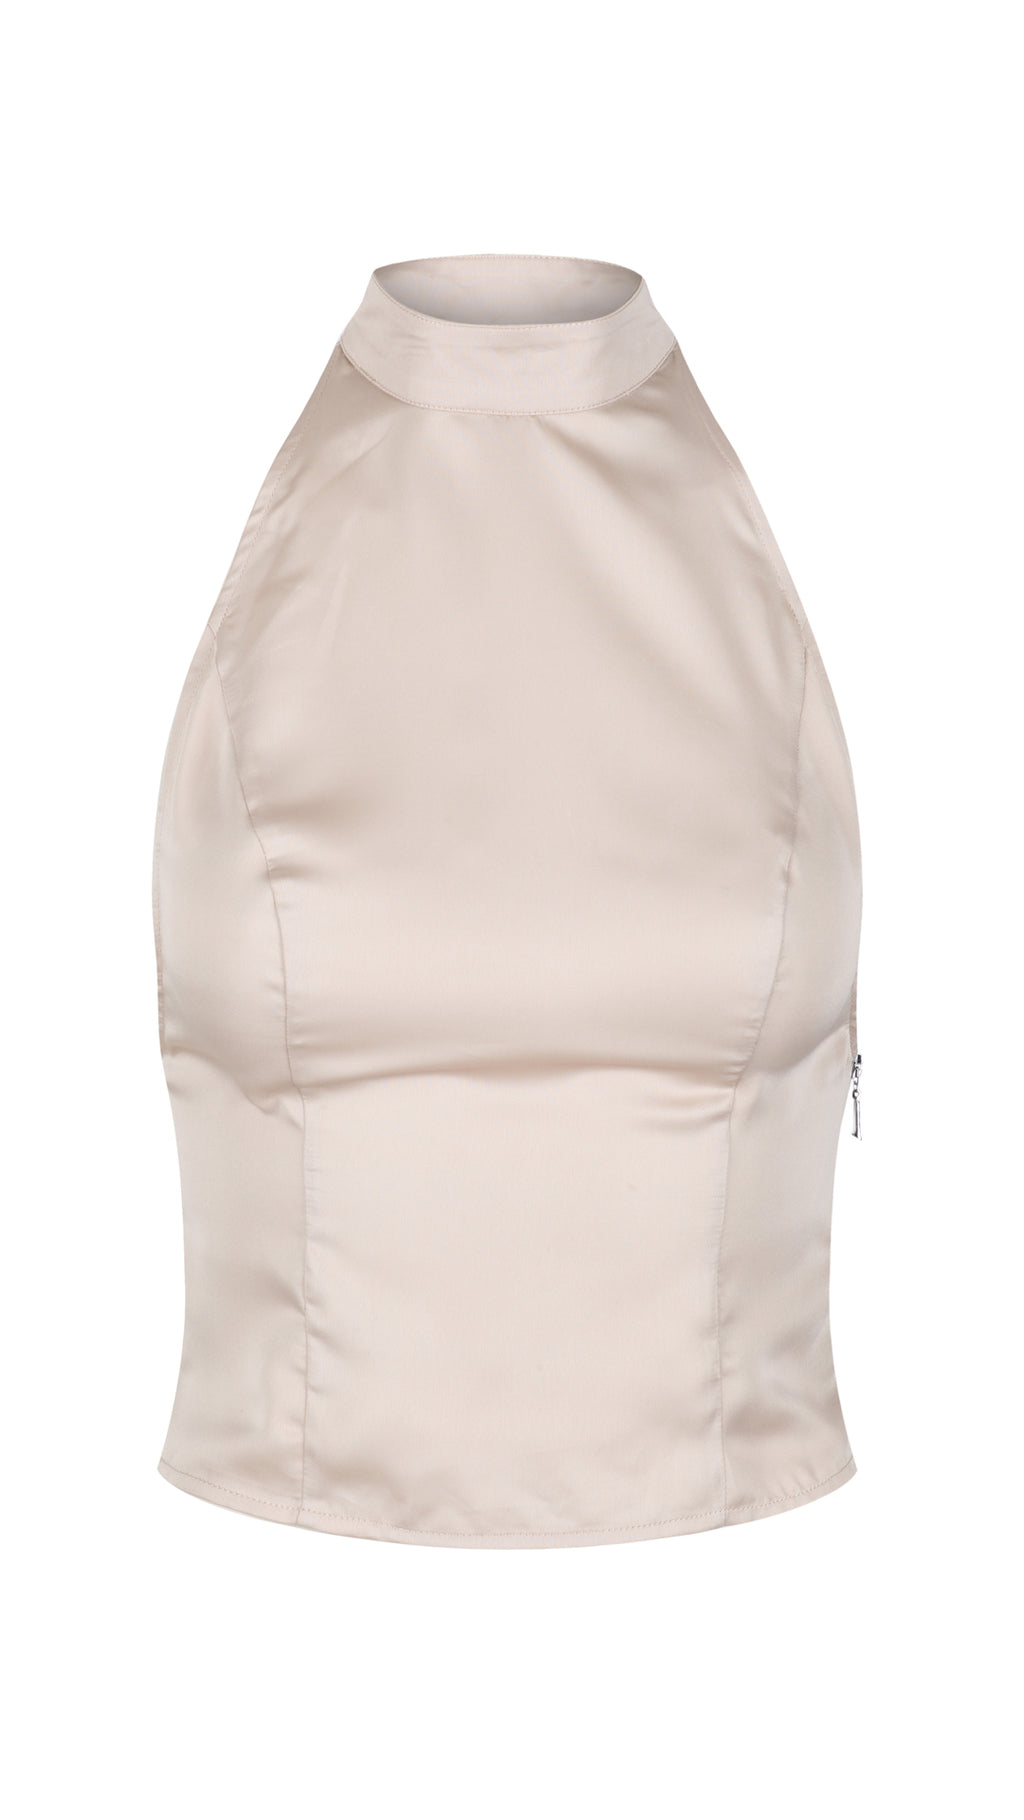 Seven Sins, Nude Satin Strappy Top